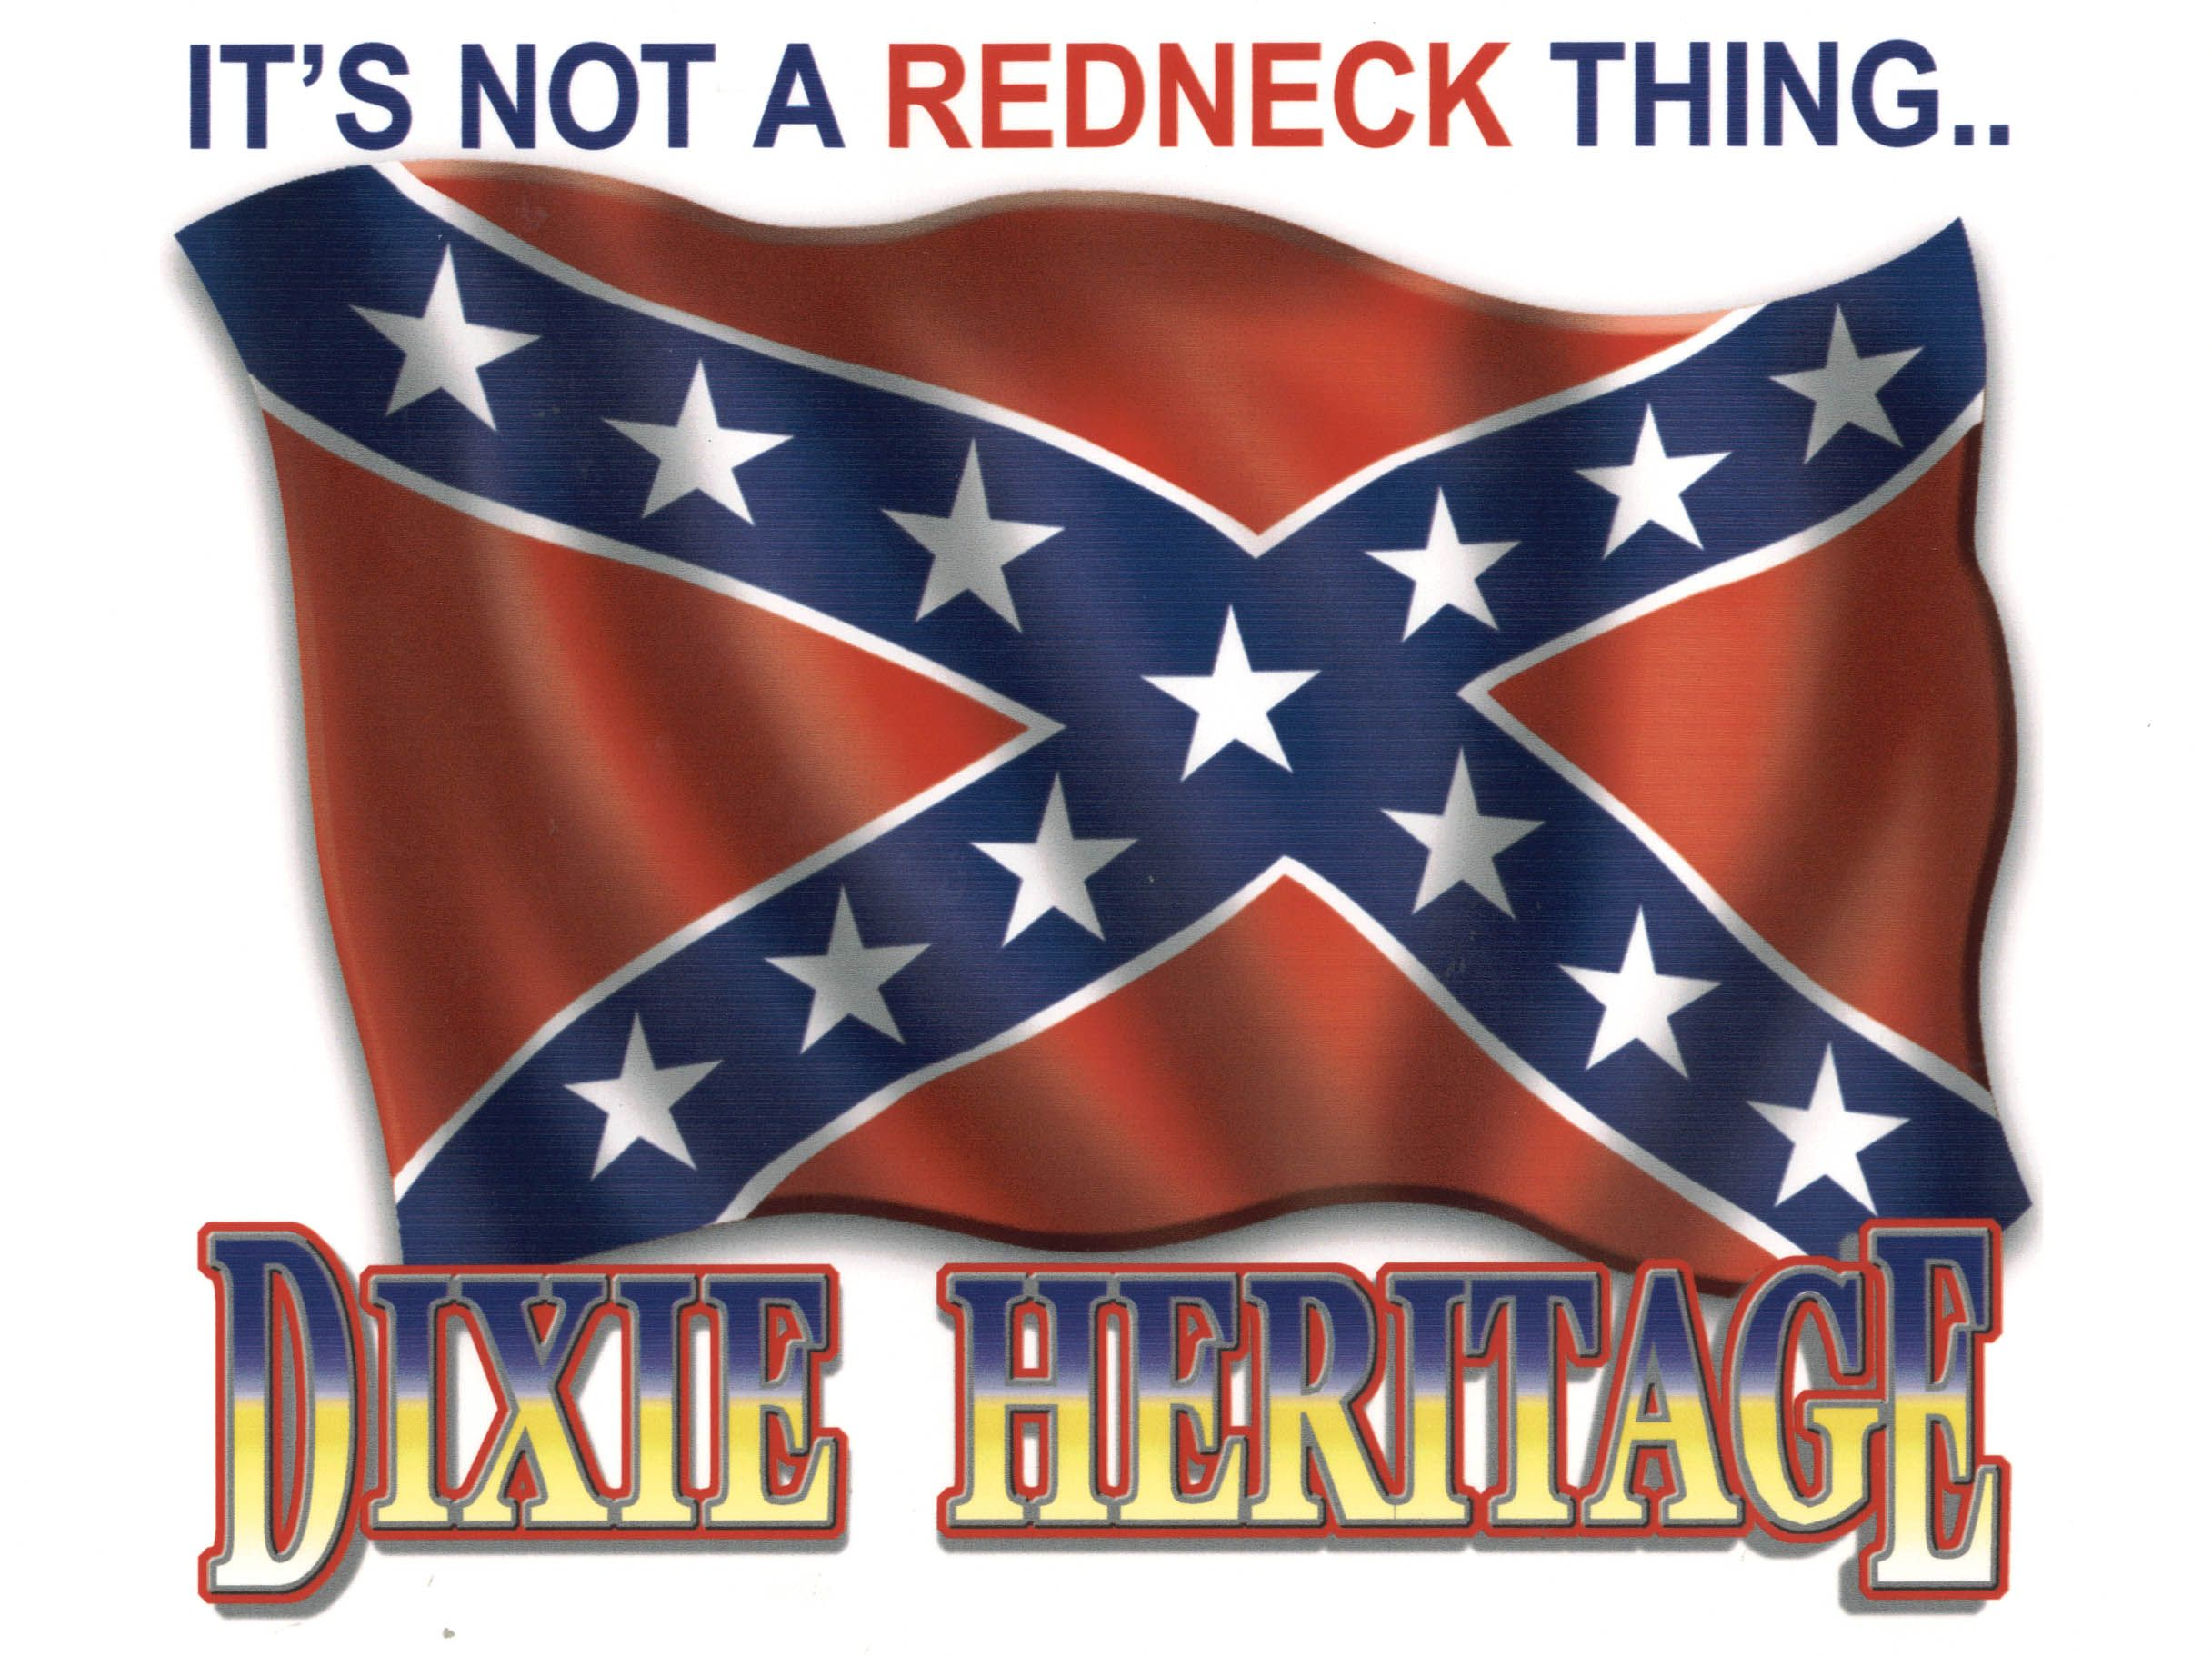 Confederate flag heritage not hate dixie heritage